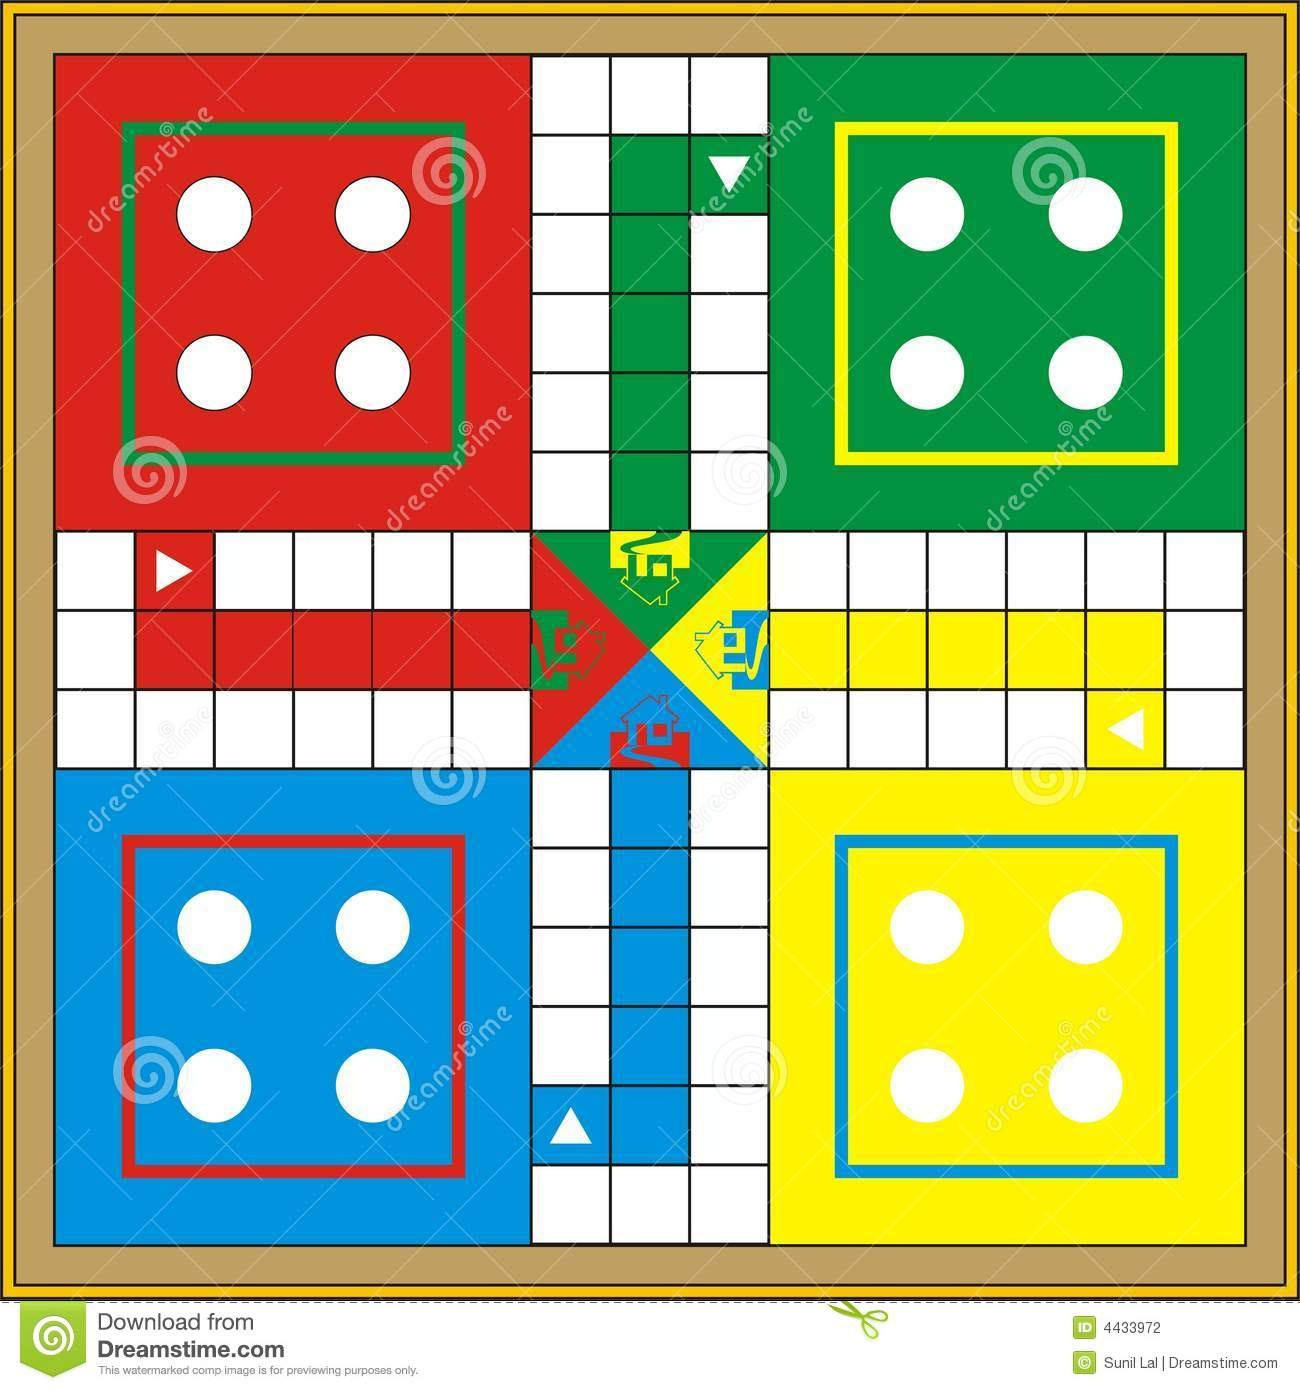 Ludo-Print & Gift Or Play Stock Illustration. Illustration Of - Free Printable Ludo Board